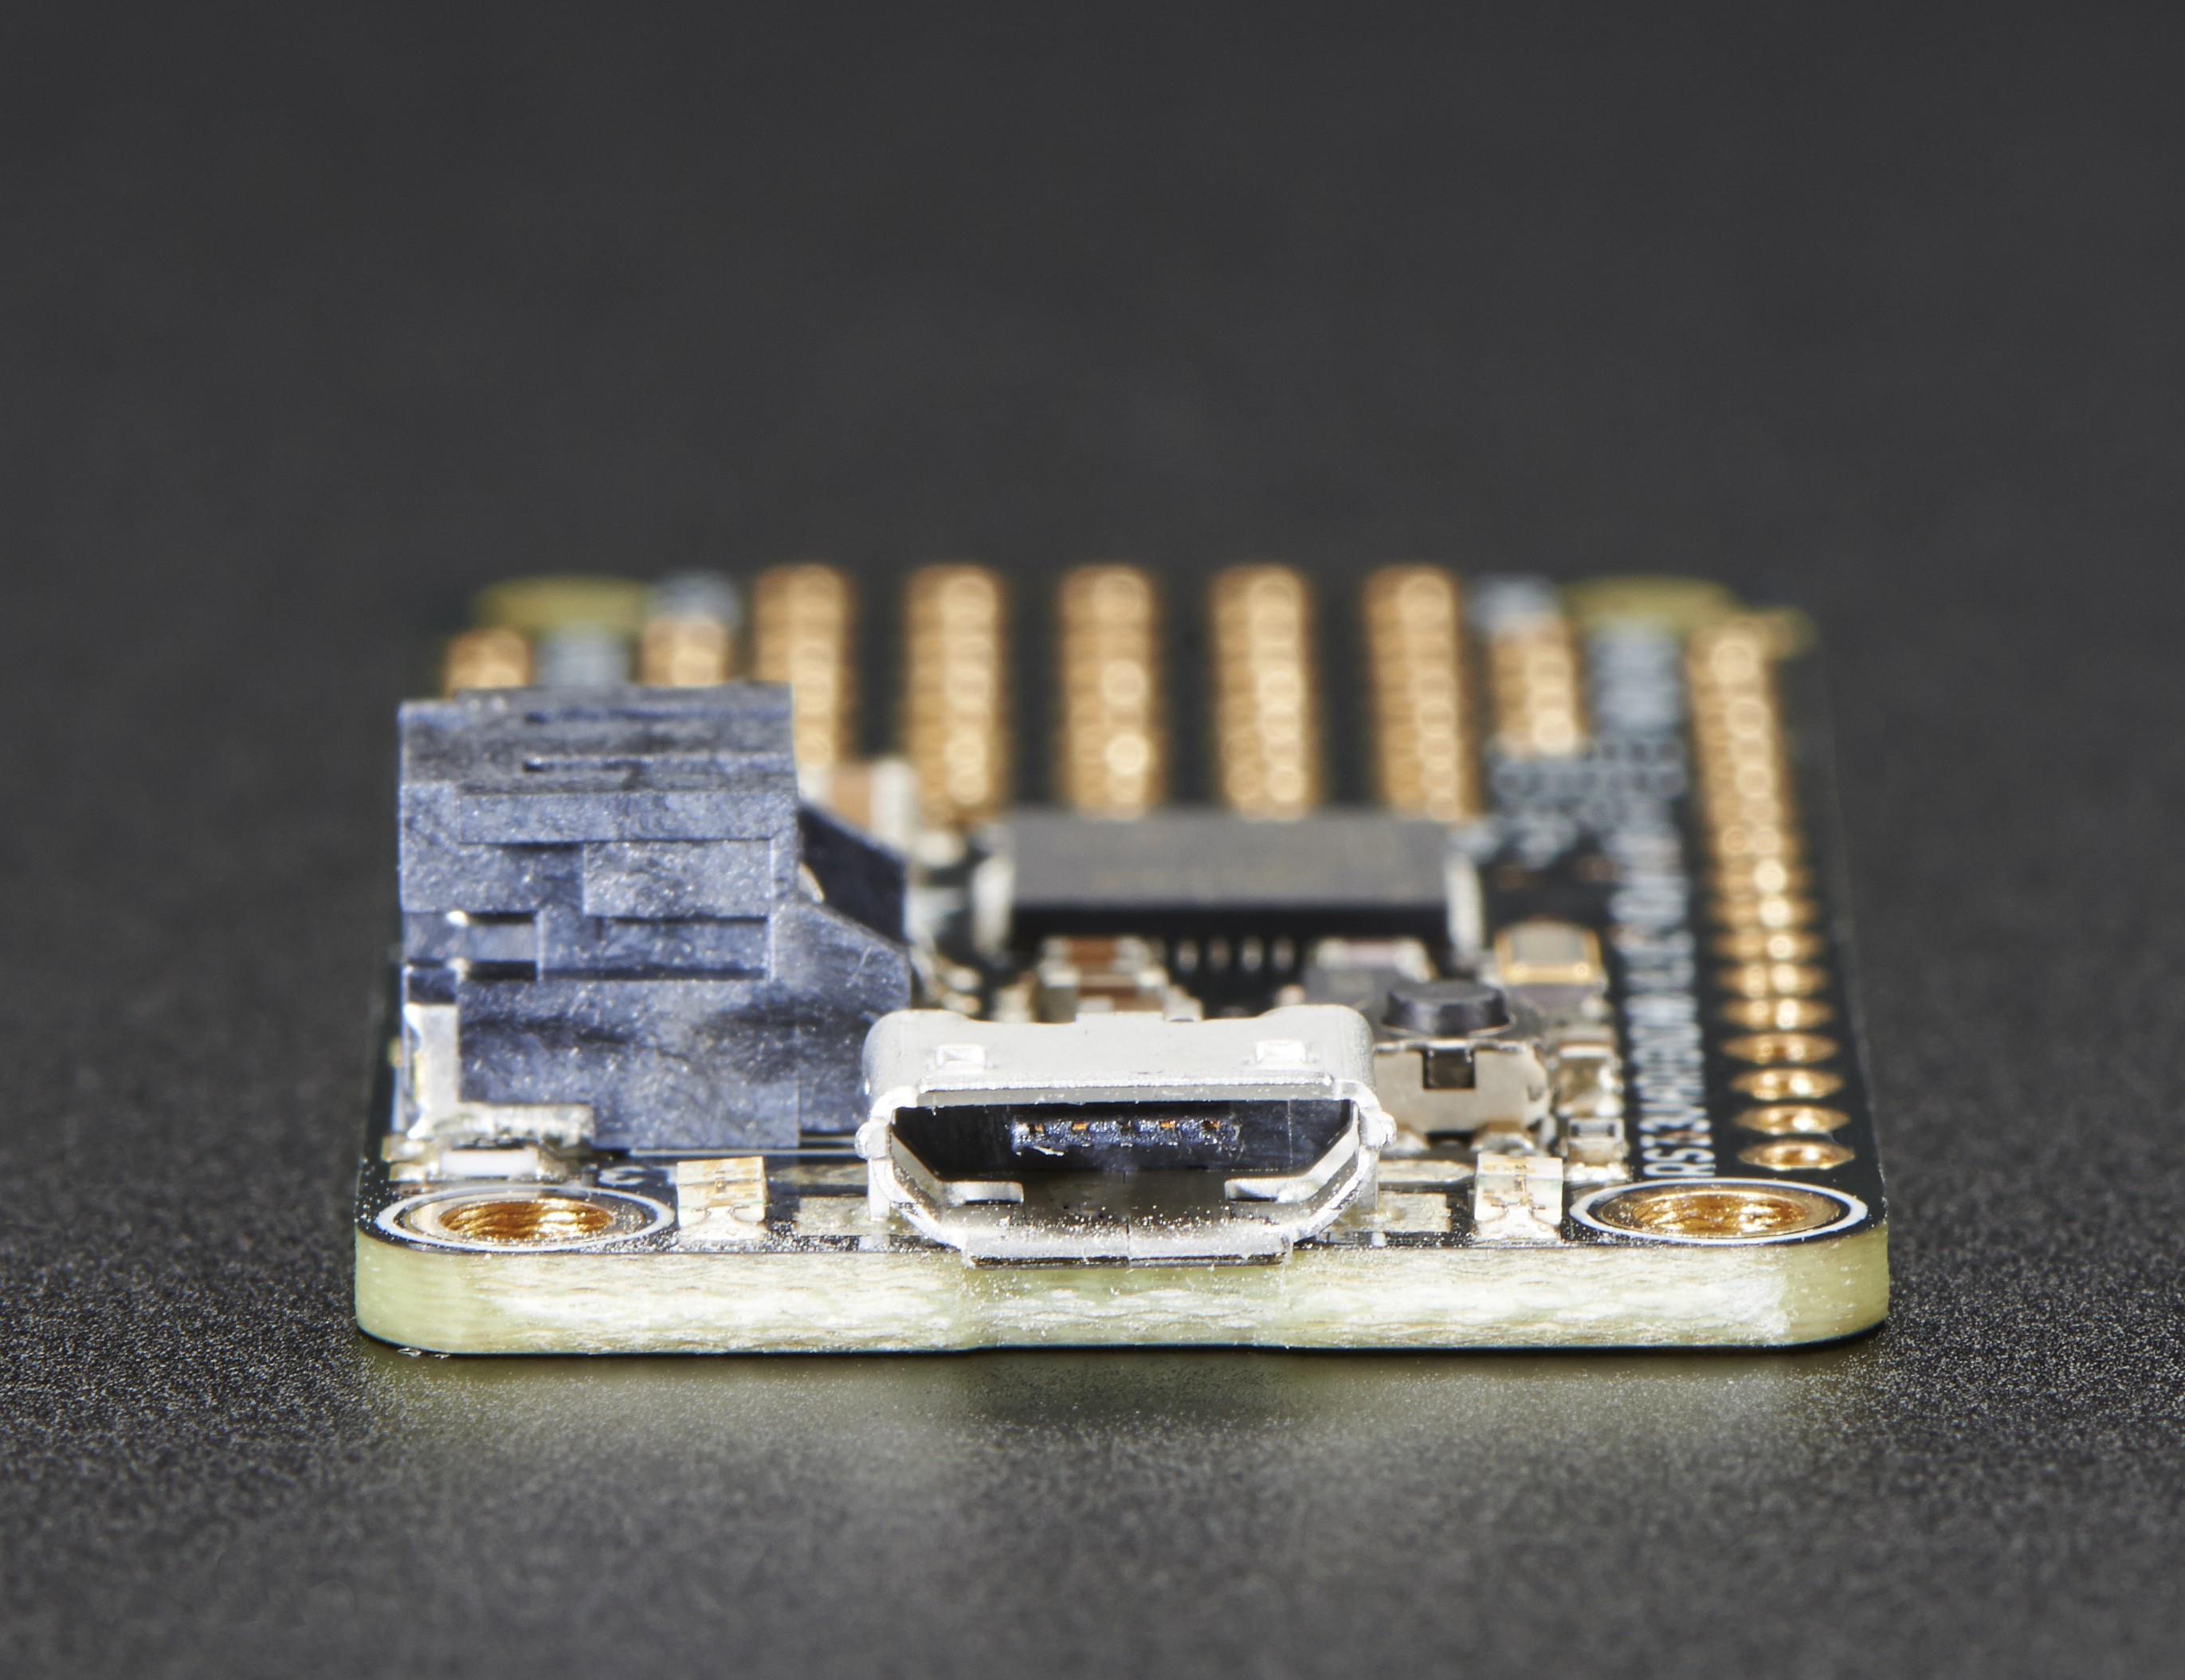 adafruit_products_2772_side_02_ORIG.jpg